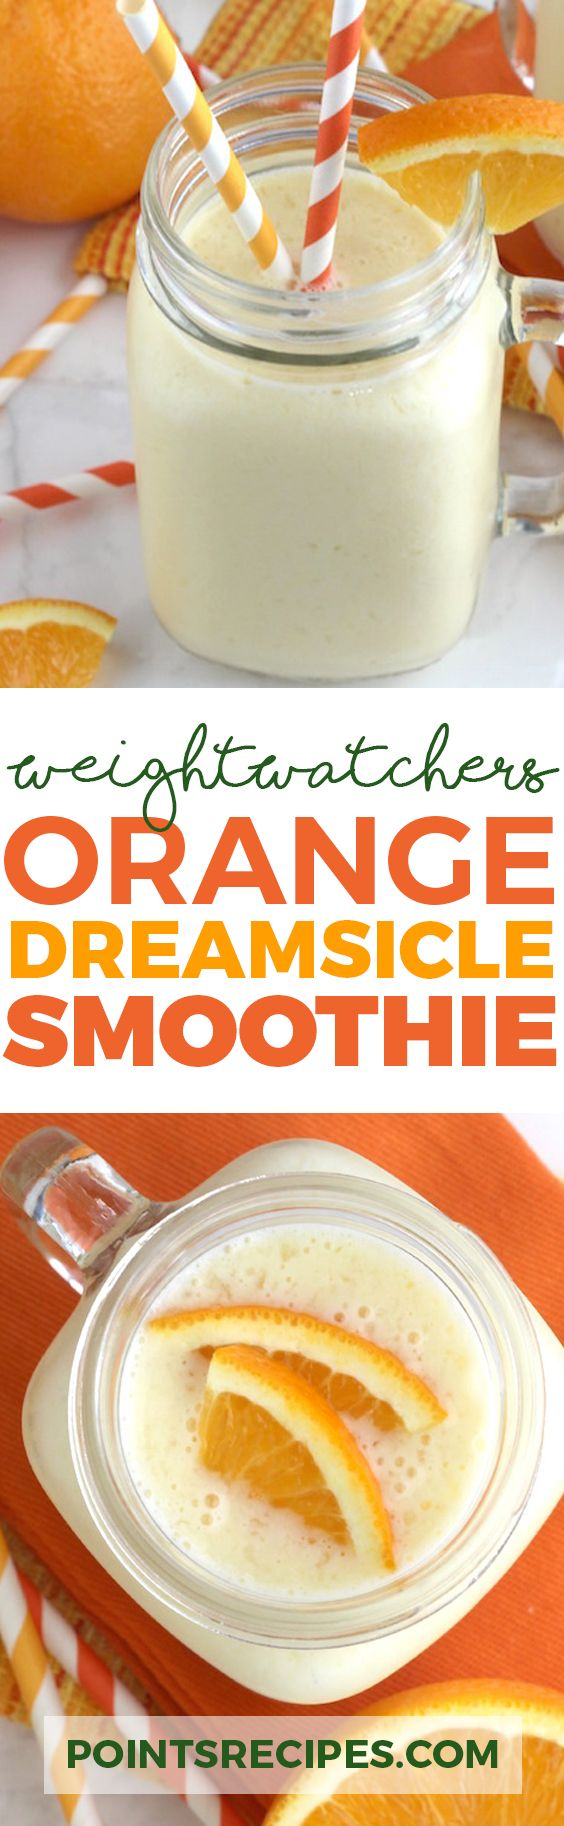 Orange Dreamsicle Smoothie (Weight Watchers SmartPoints)